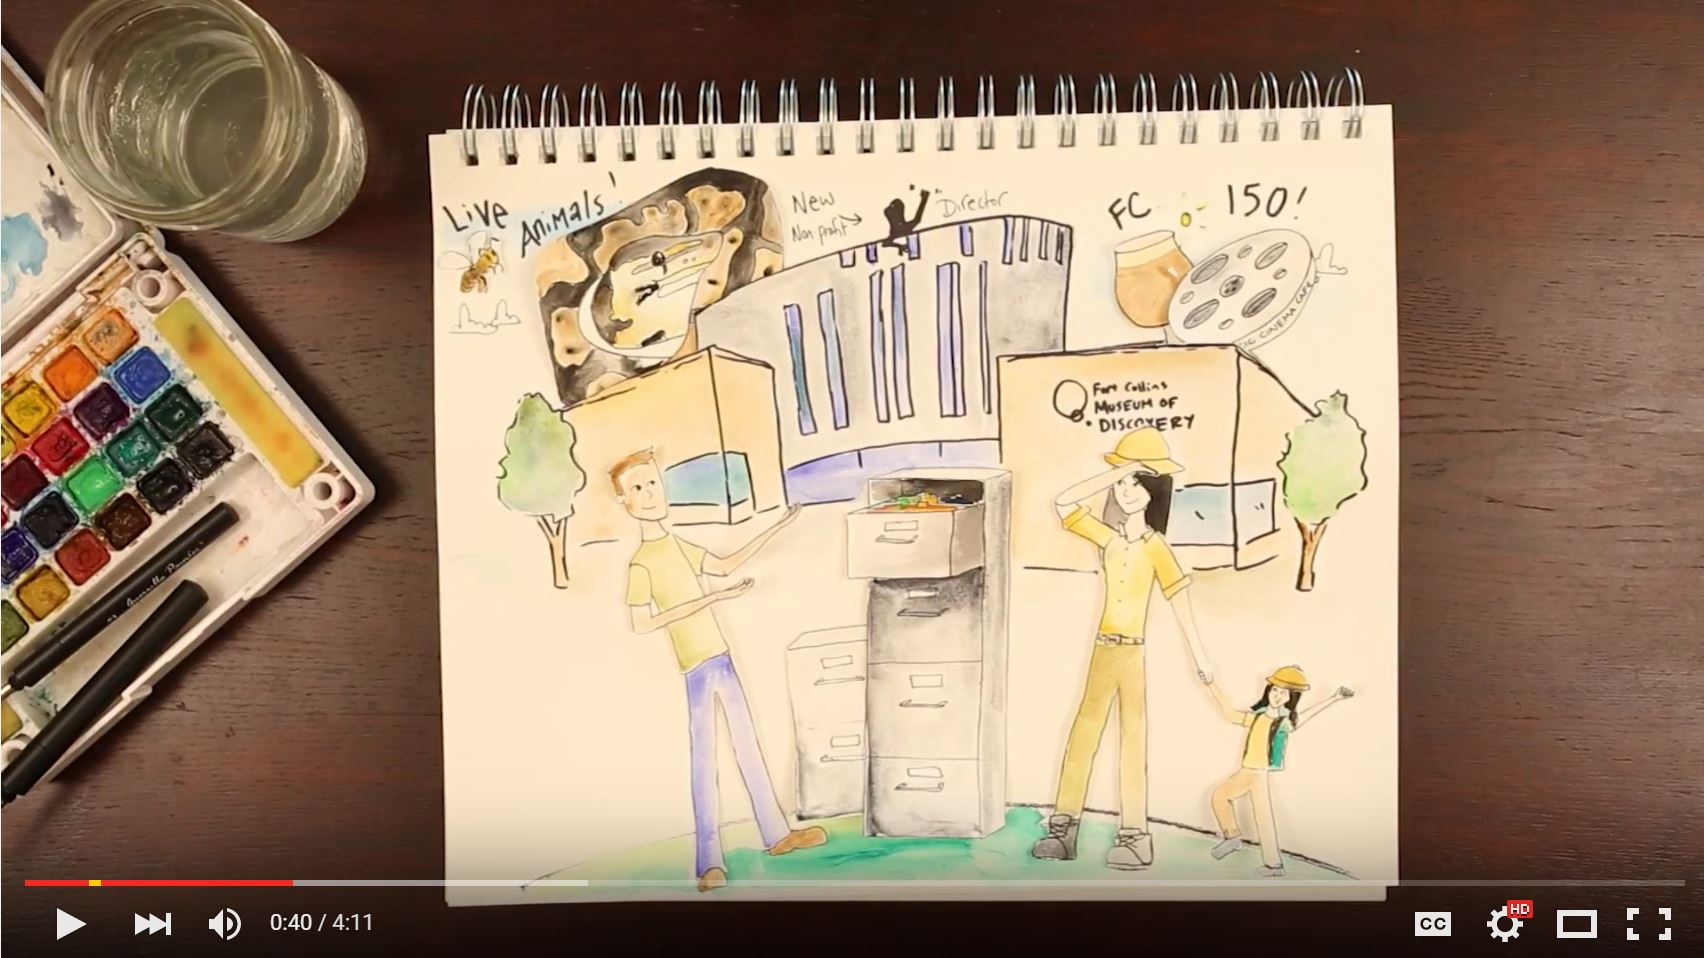 fort-collins-museum-of-discovery-explainer-video-colorado-graphic-recording-karina-mullen-branson-conversketch